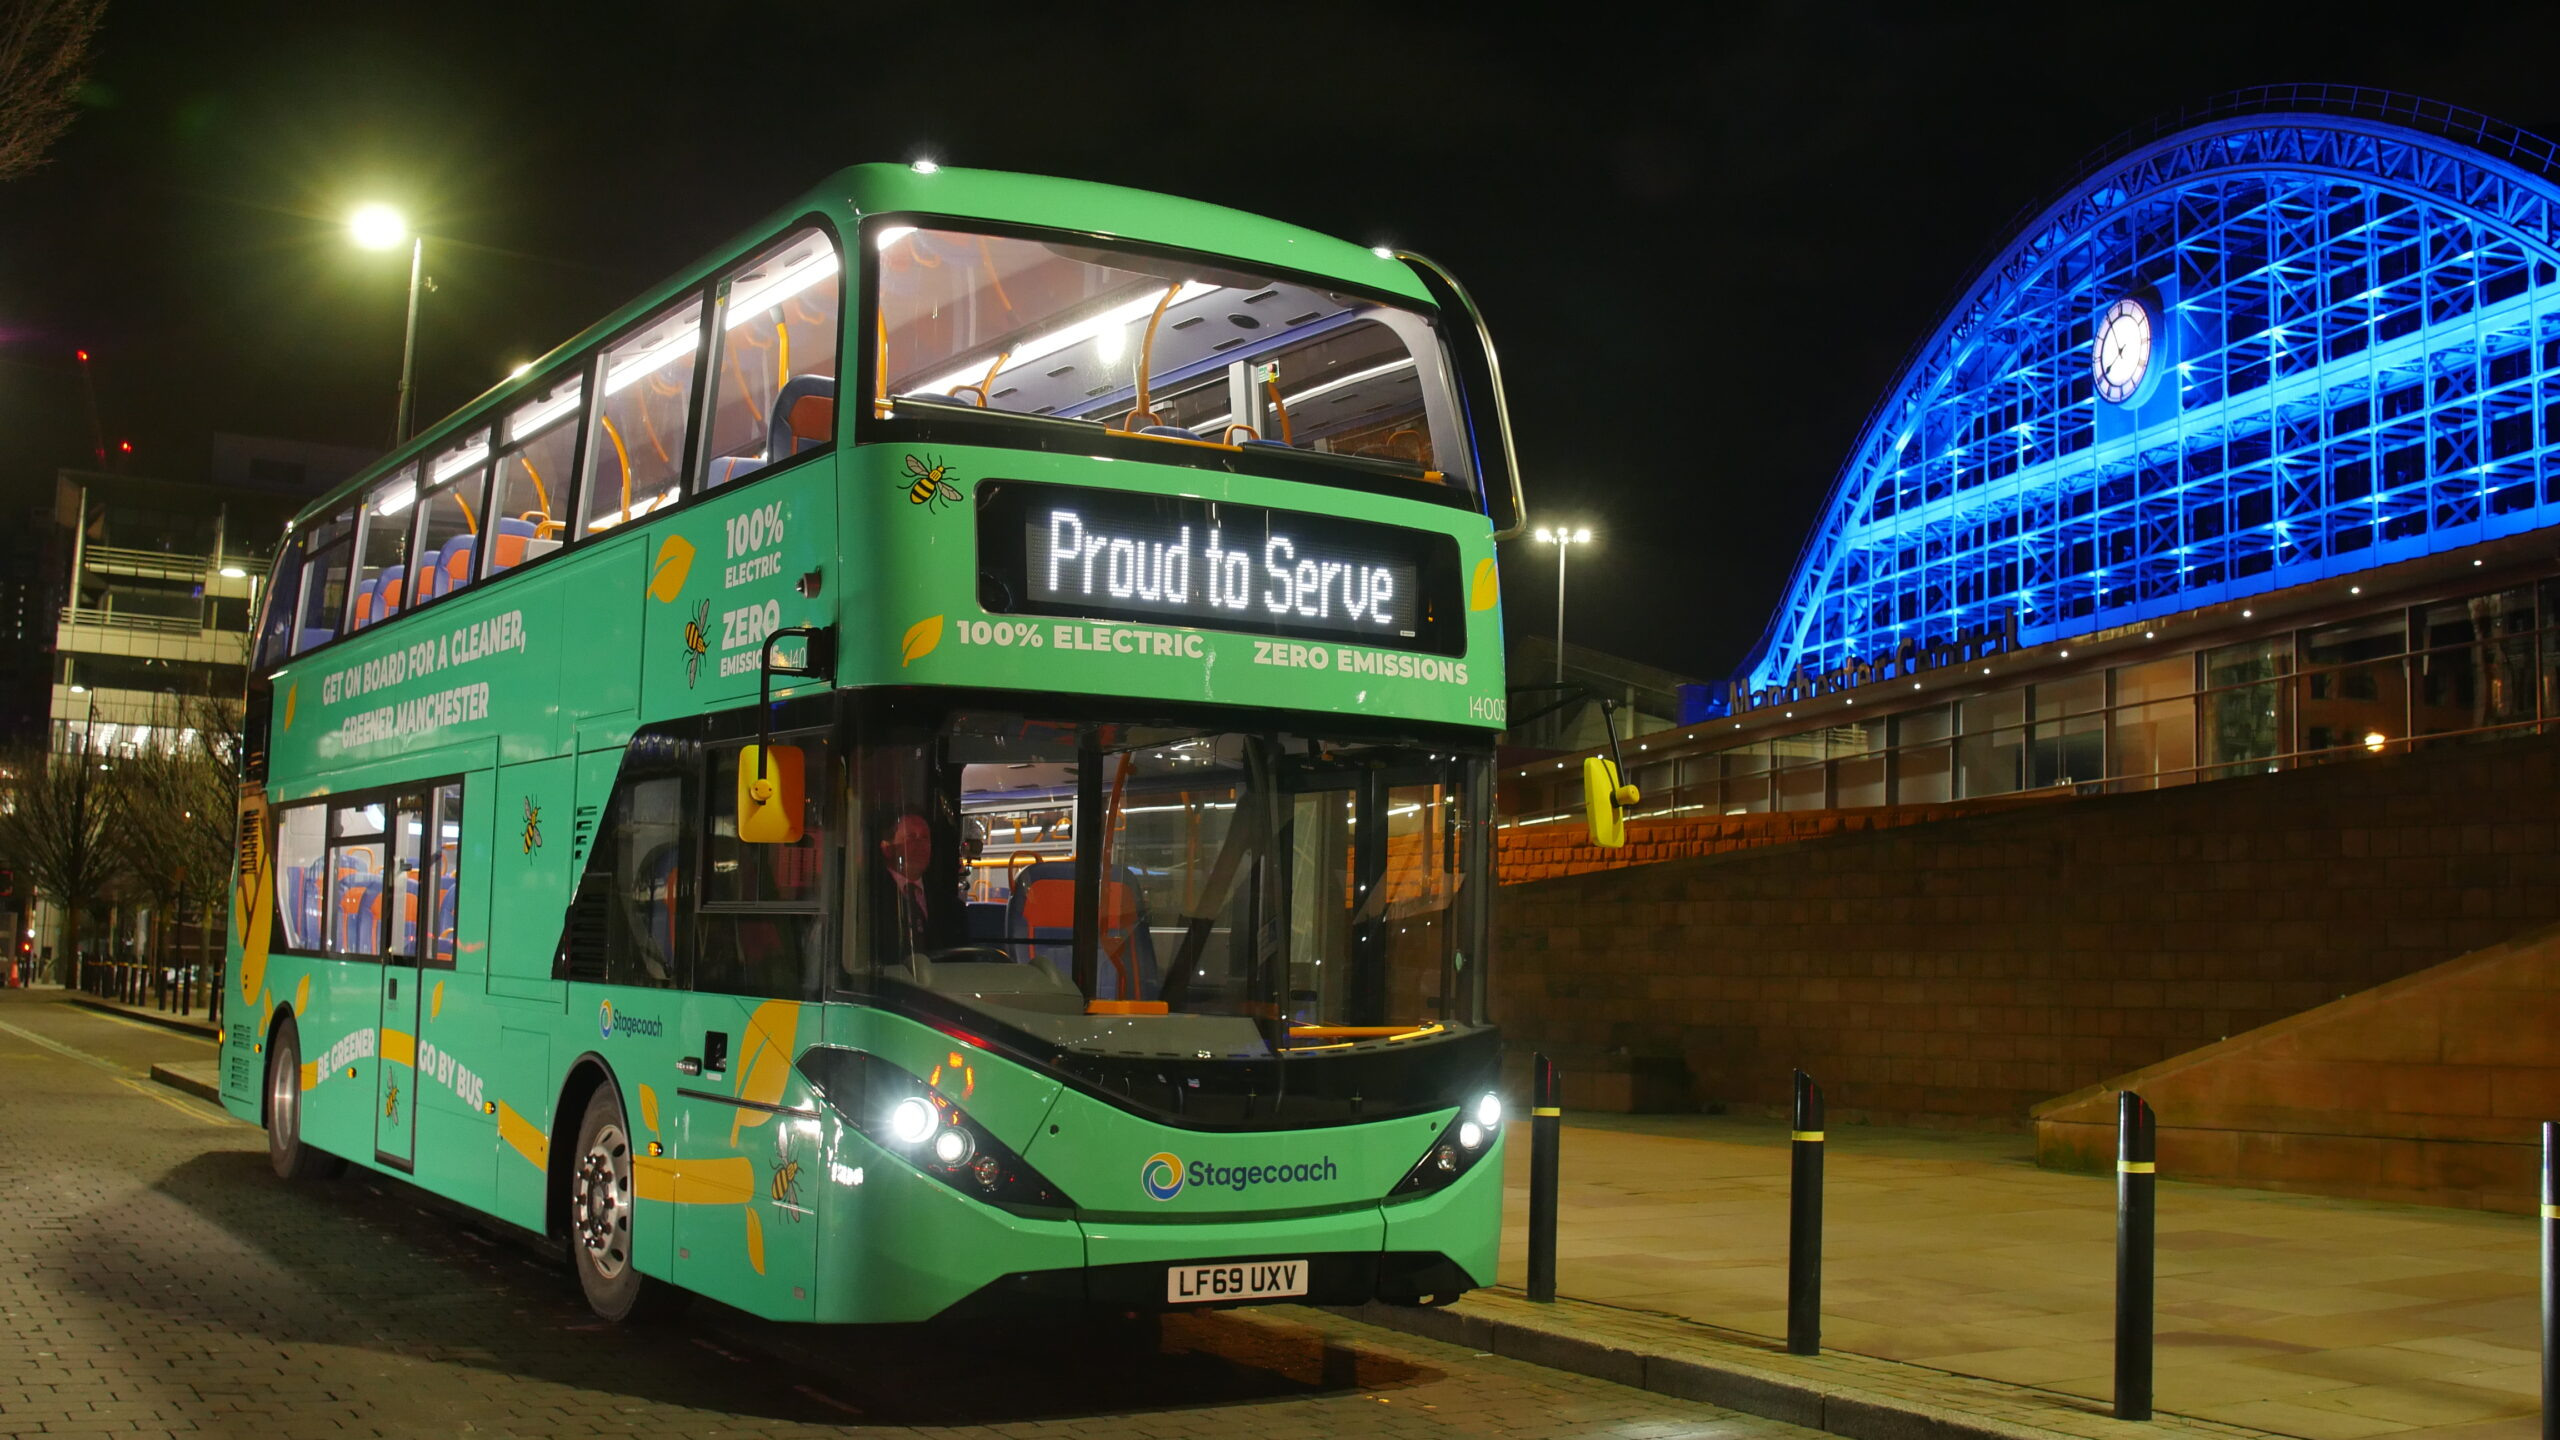 stagecoach greater manchester electric double decker